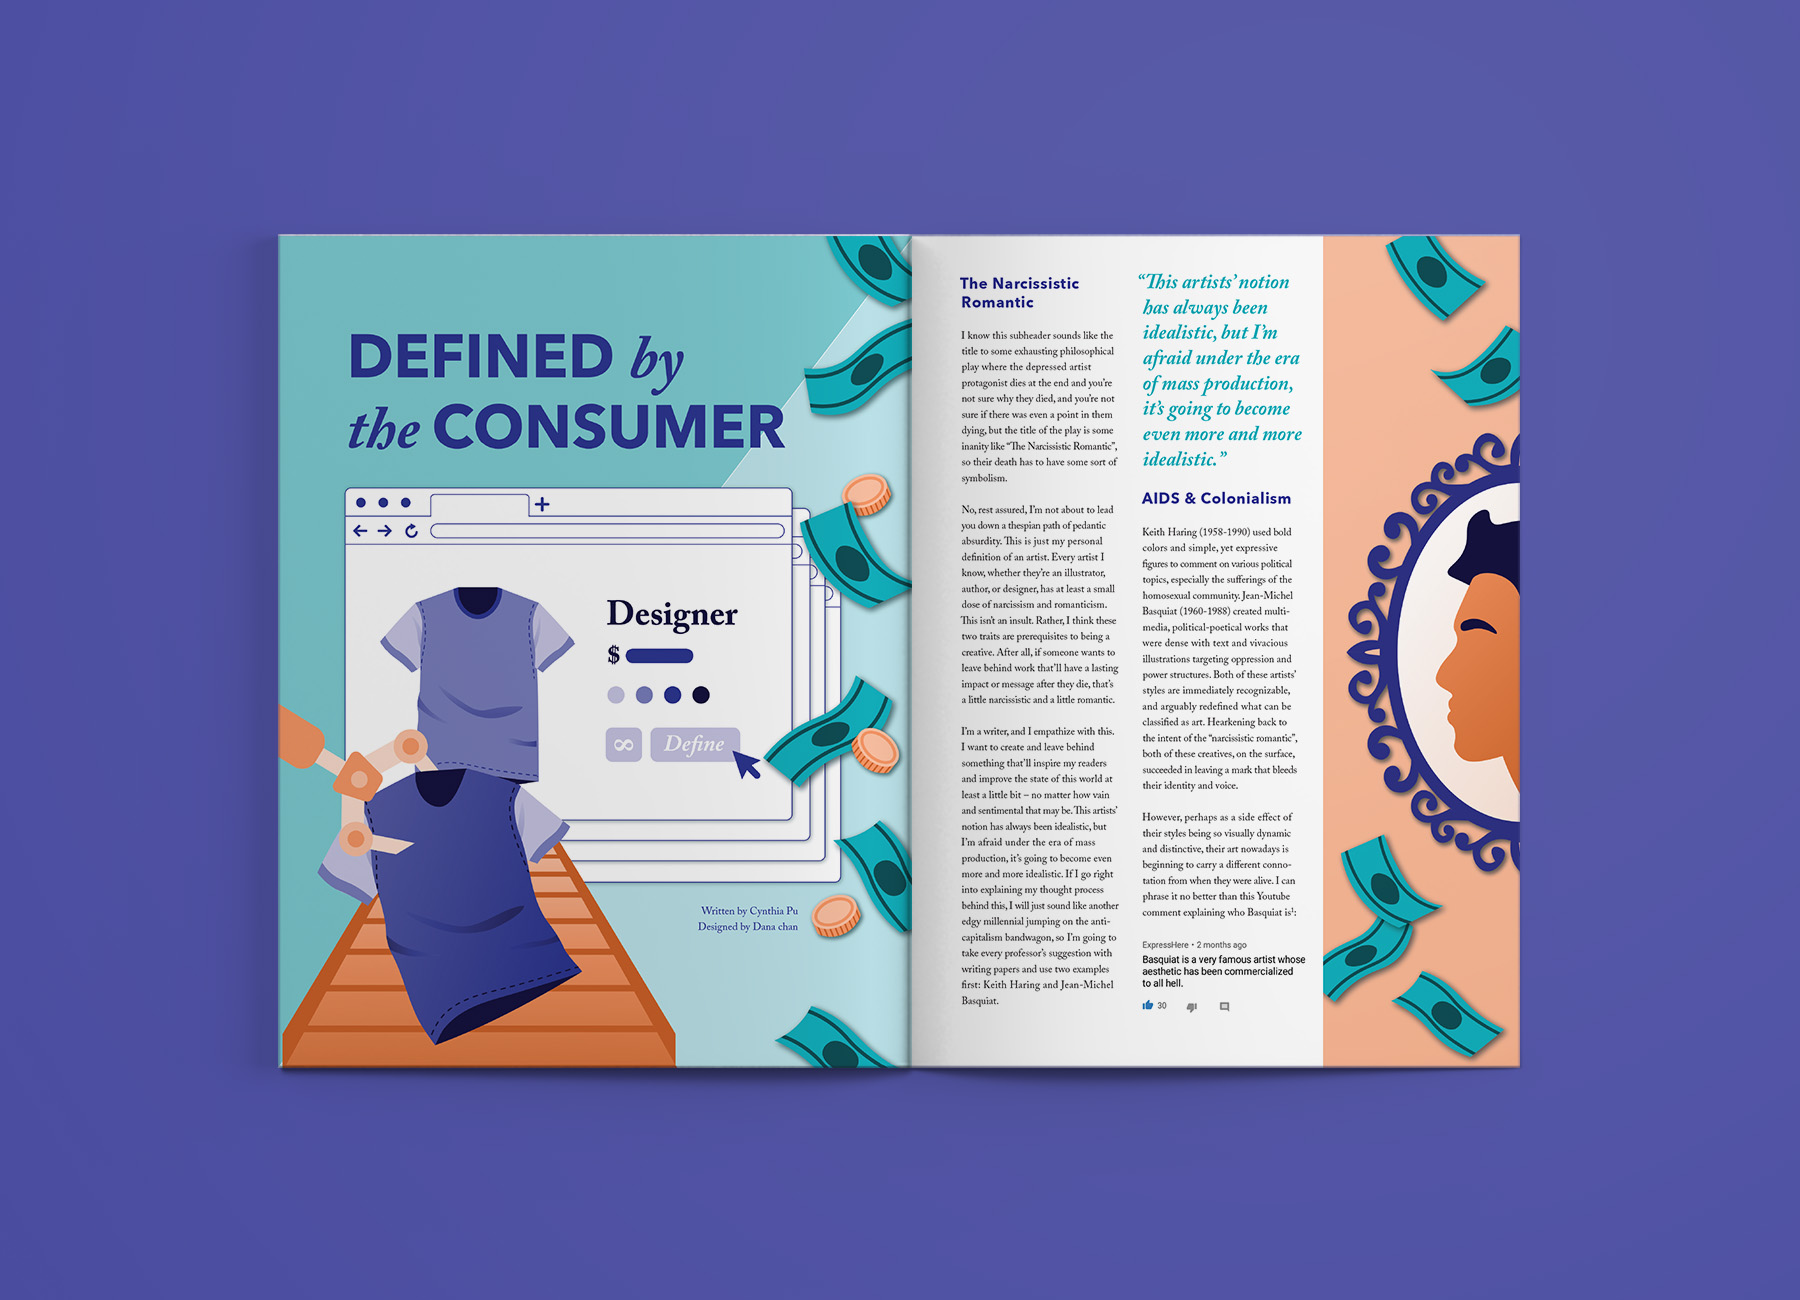 Defined by the consumer - Written by Cynthia PuDesigned by Dana Chan (me!)